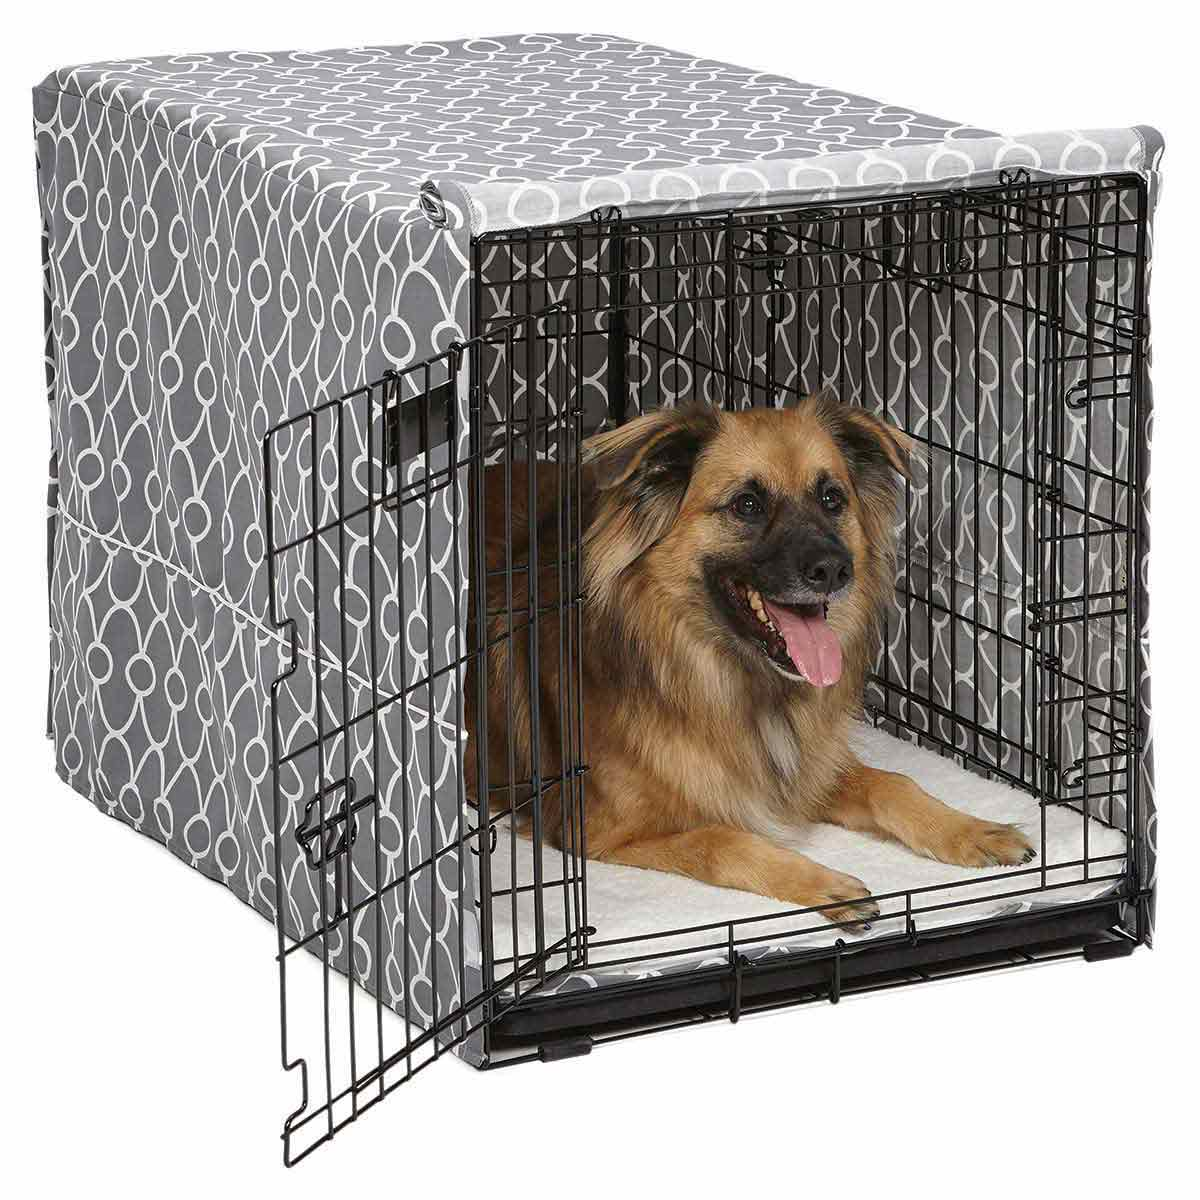 36 inch Quiet Time Crate Cover - Cute Gray Design available at Ryan's Pet Supplies